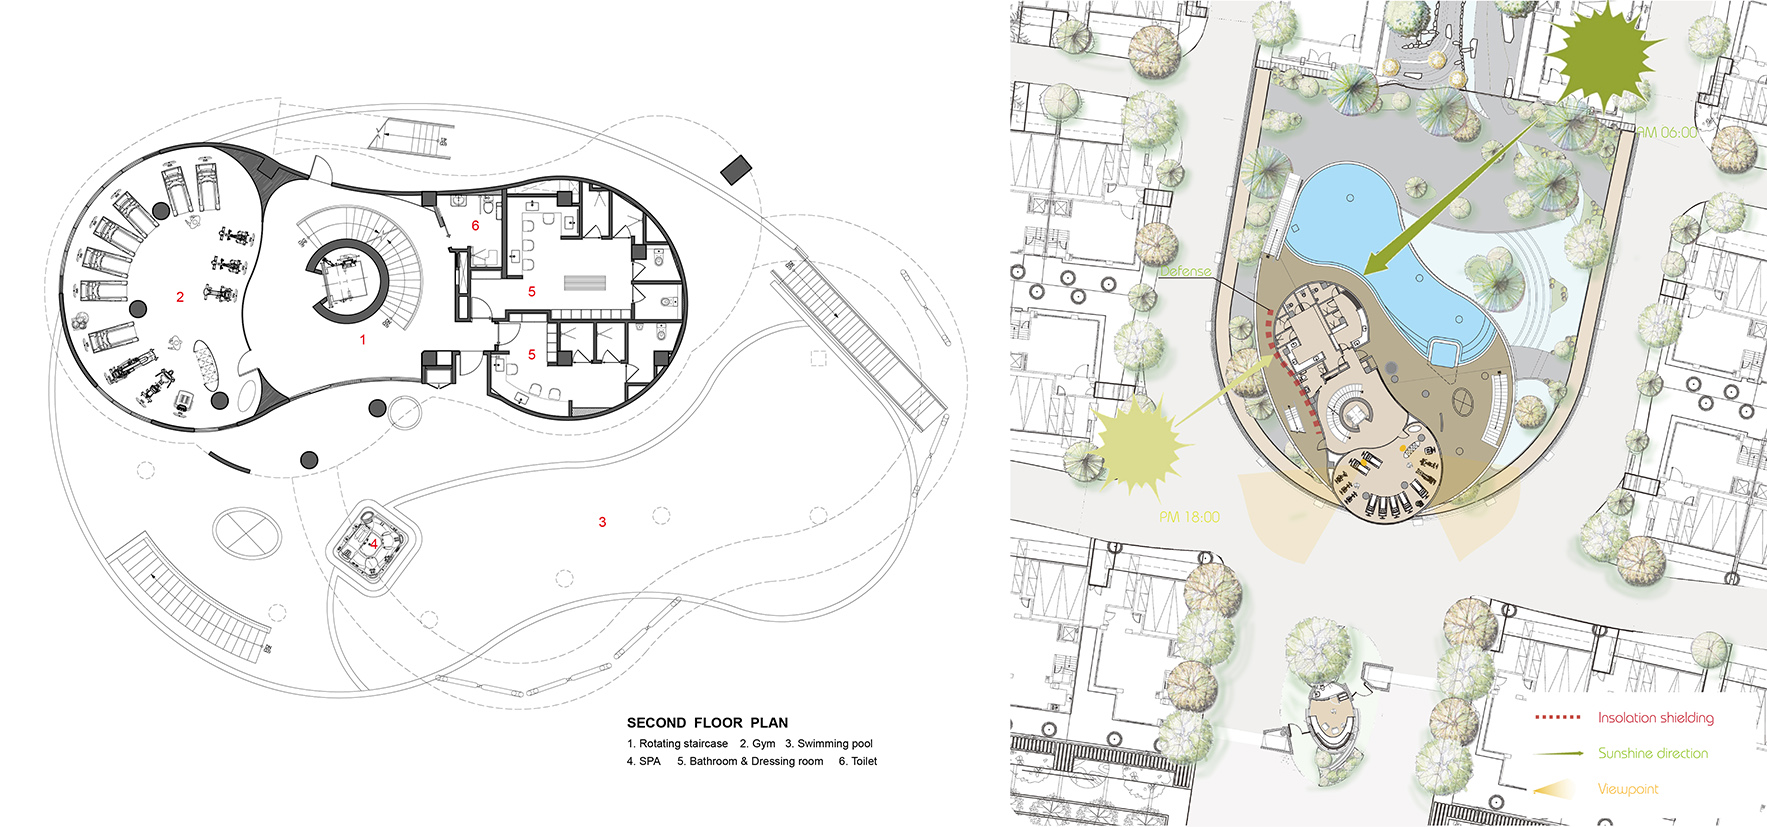 Green places 2F Plan-Sunshine direction Chain10 Architecture & Interior Design Institute}